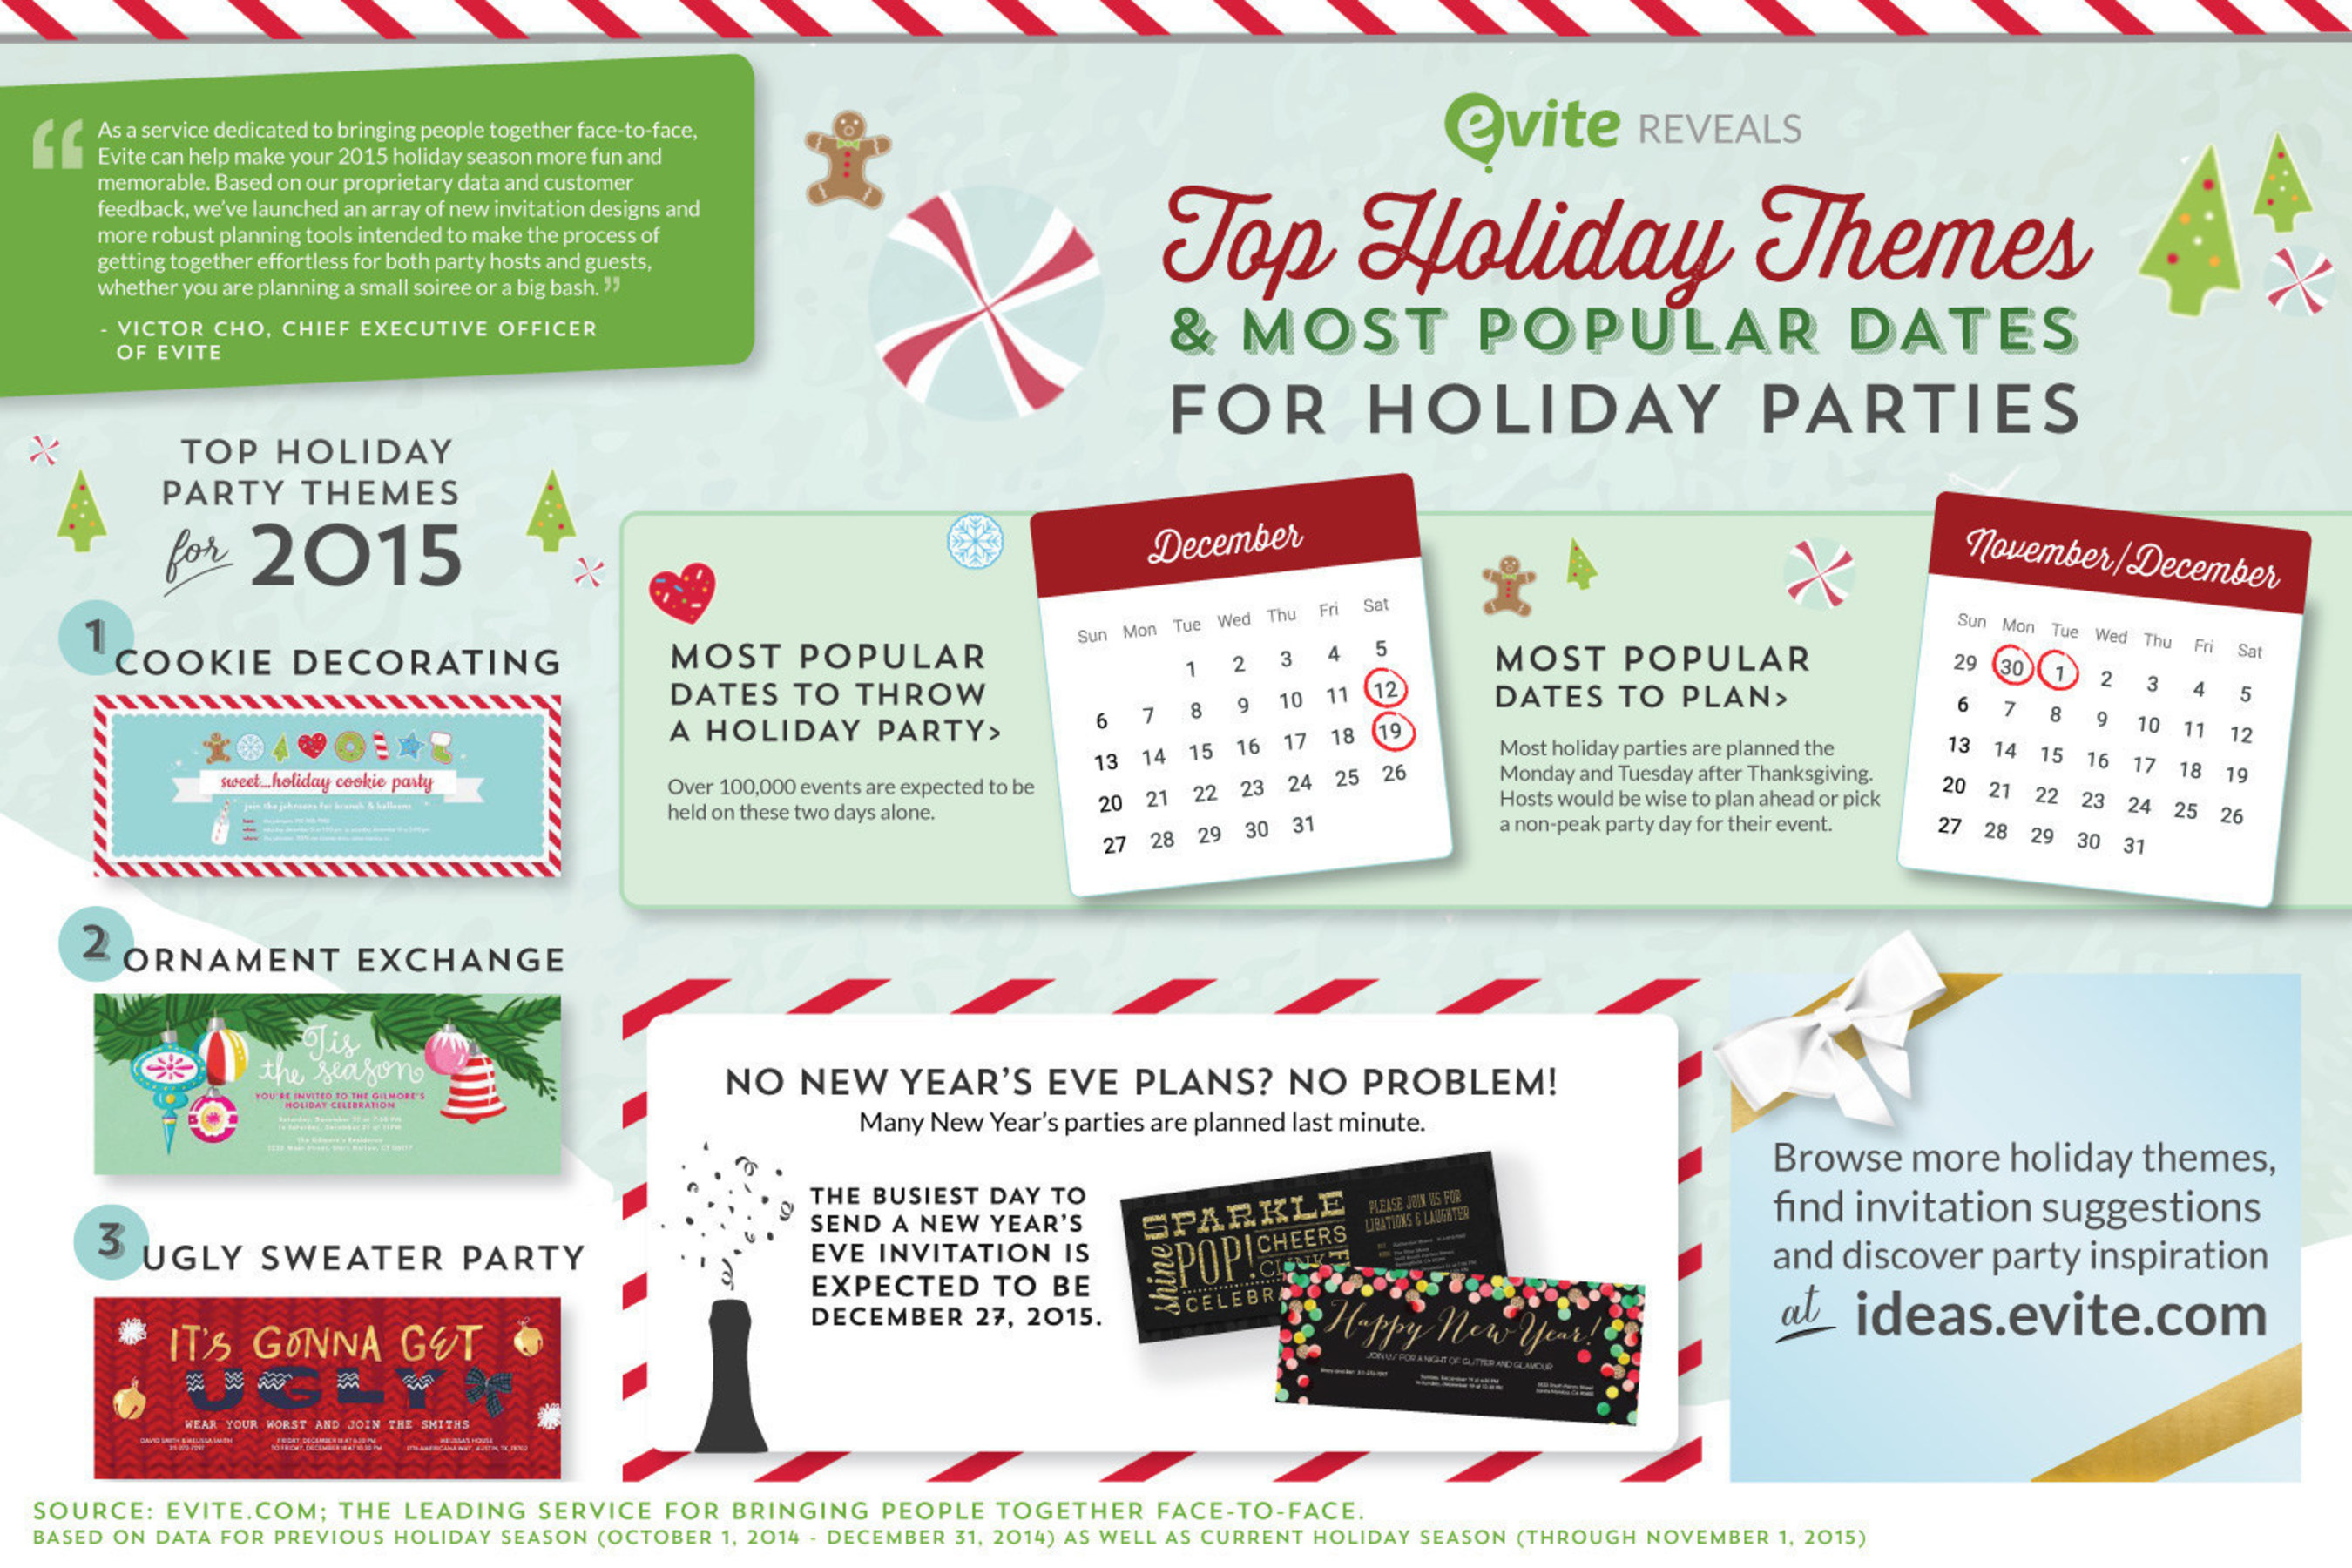 evite reveals top 10 holiday party themes for 2015 most popular